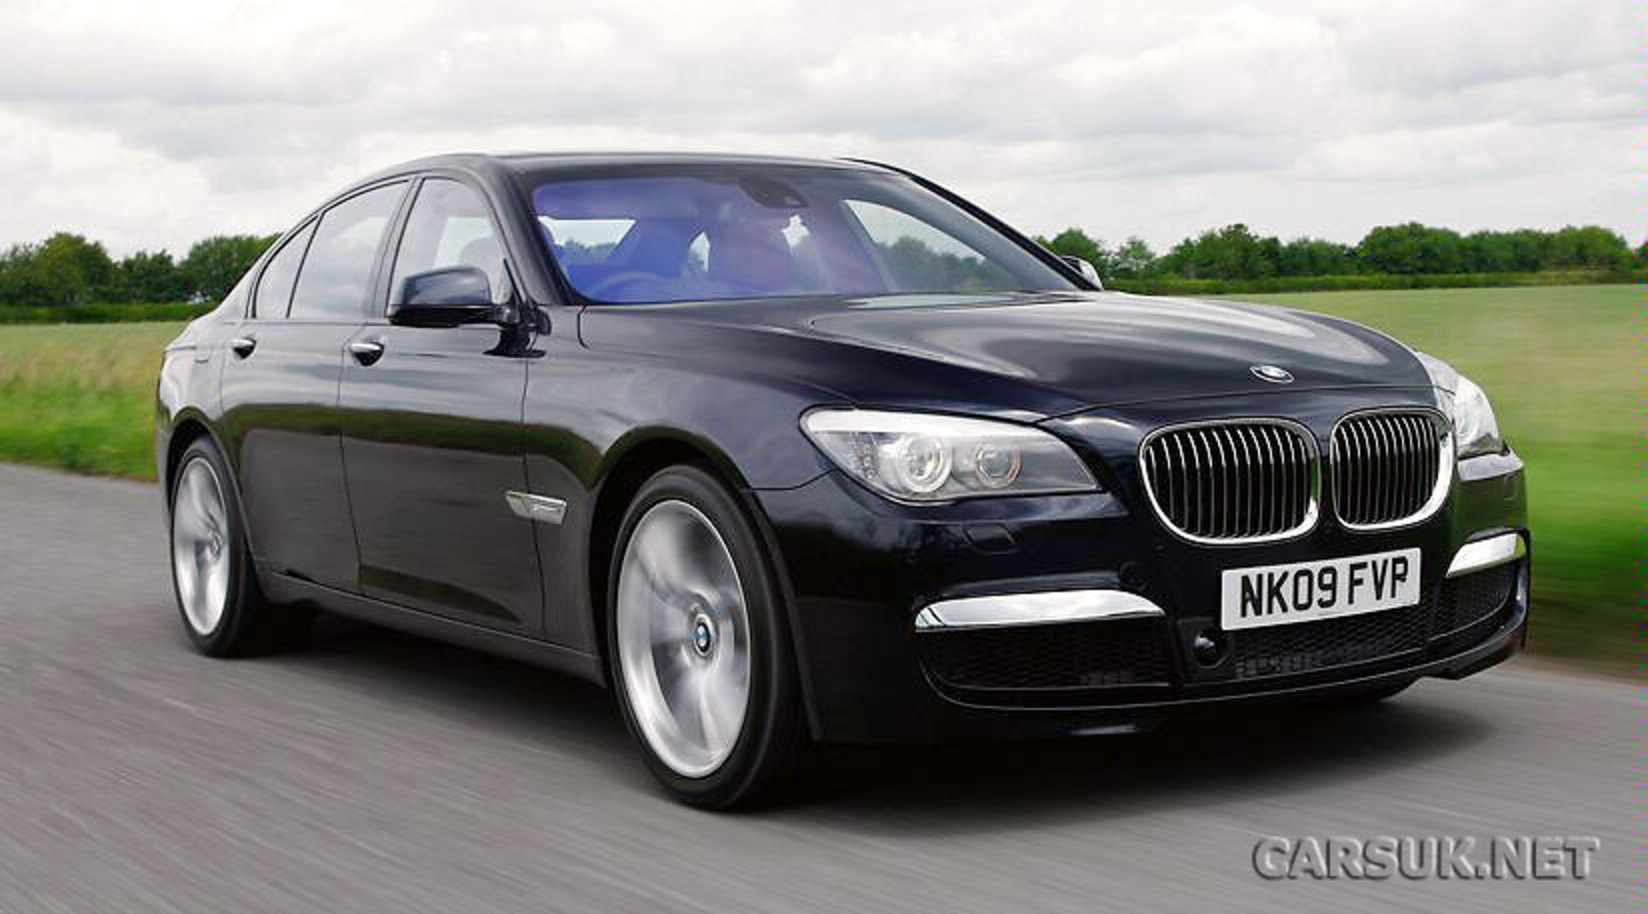 of what the snapper claimed to be a BMW M7. But we weren't convinced.